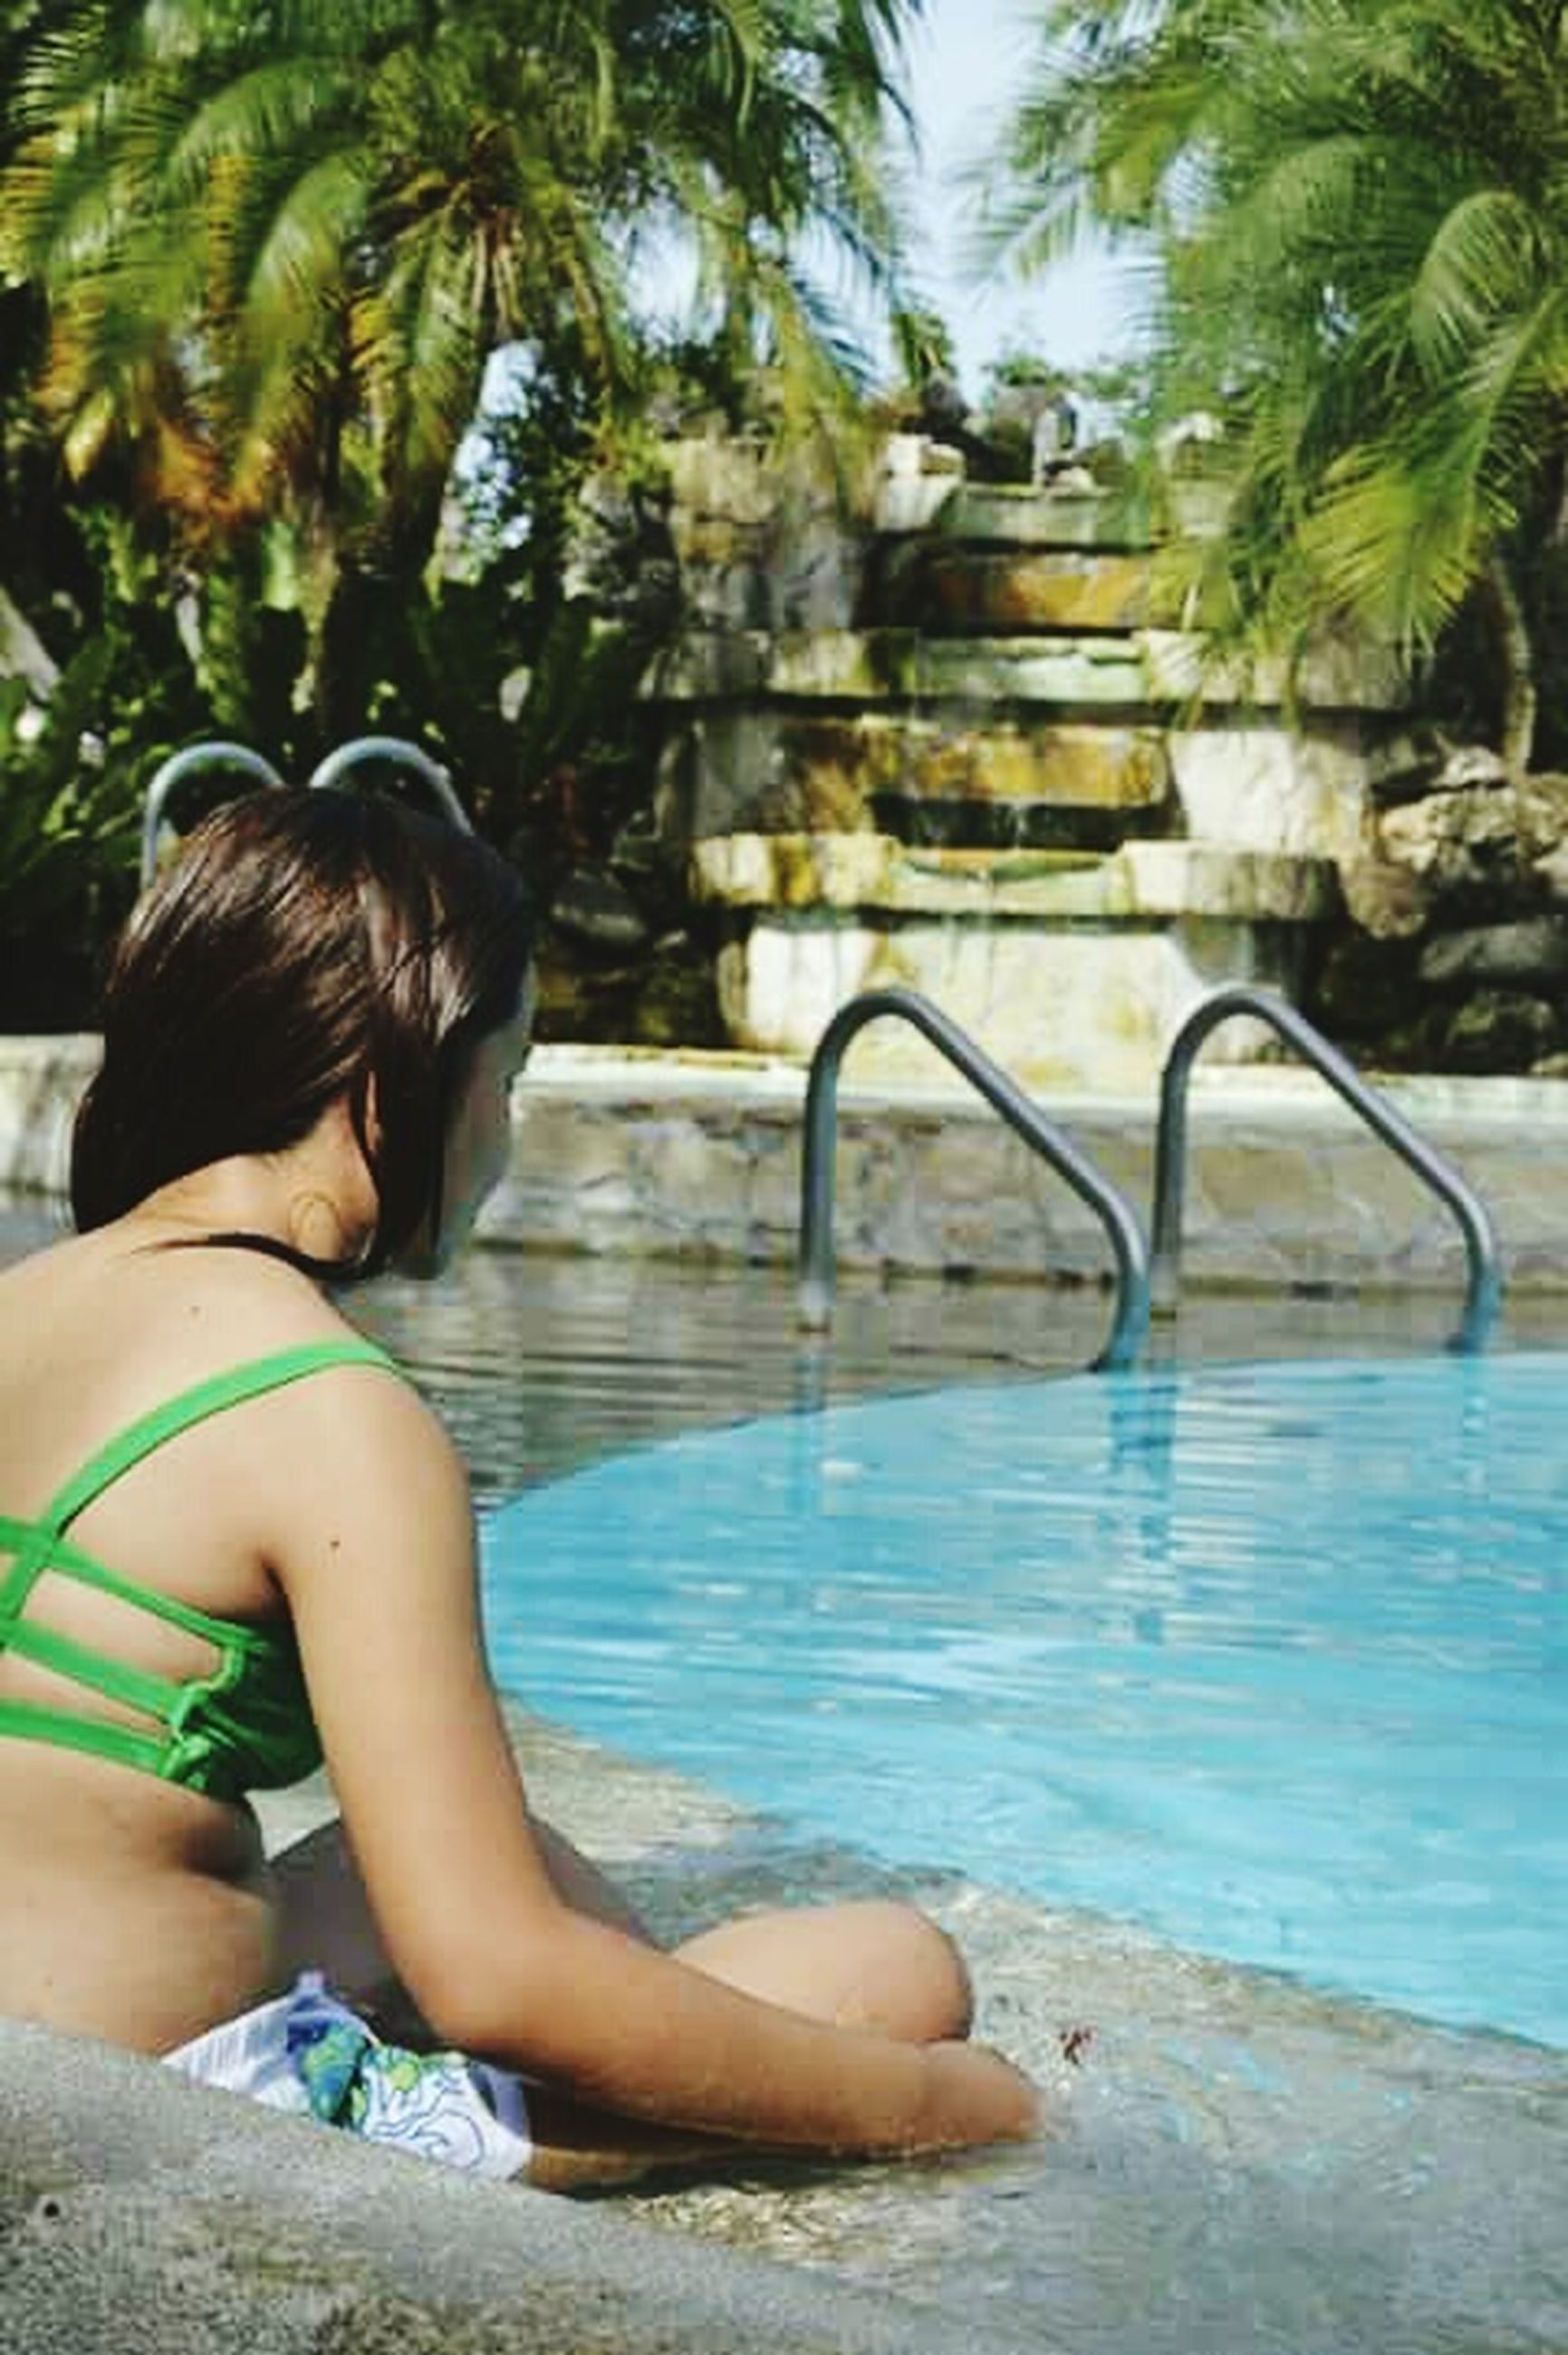 lifestyles, water, leisure activity, tree, swimming pool, person, young adult, enjoyment, young women, sitting, vacations, relaxation, casual clothing, girls, sunlight, full length, childhood